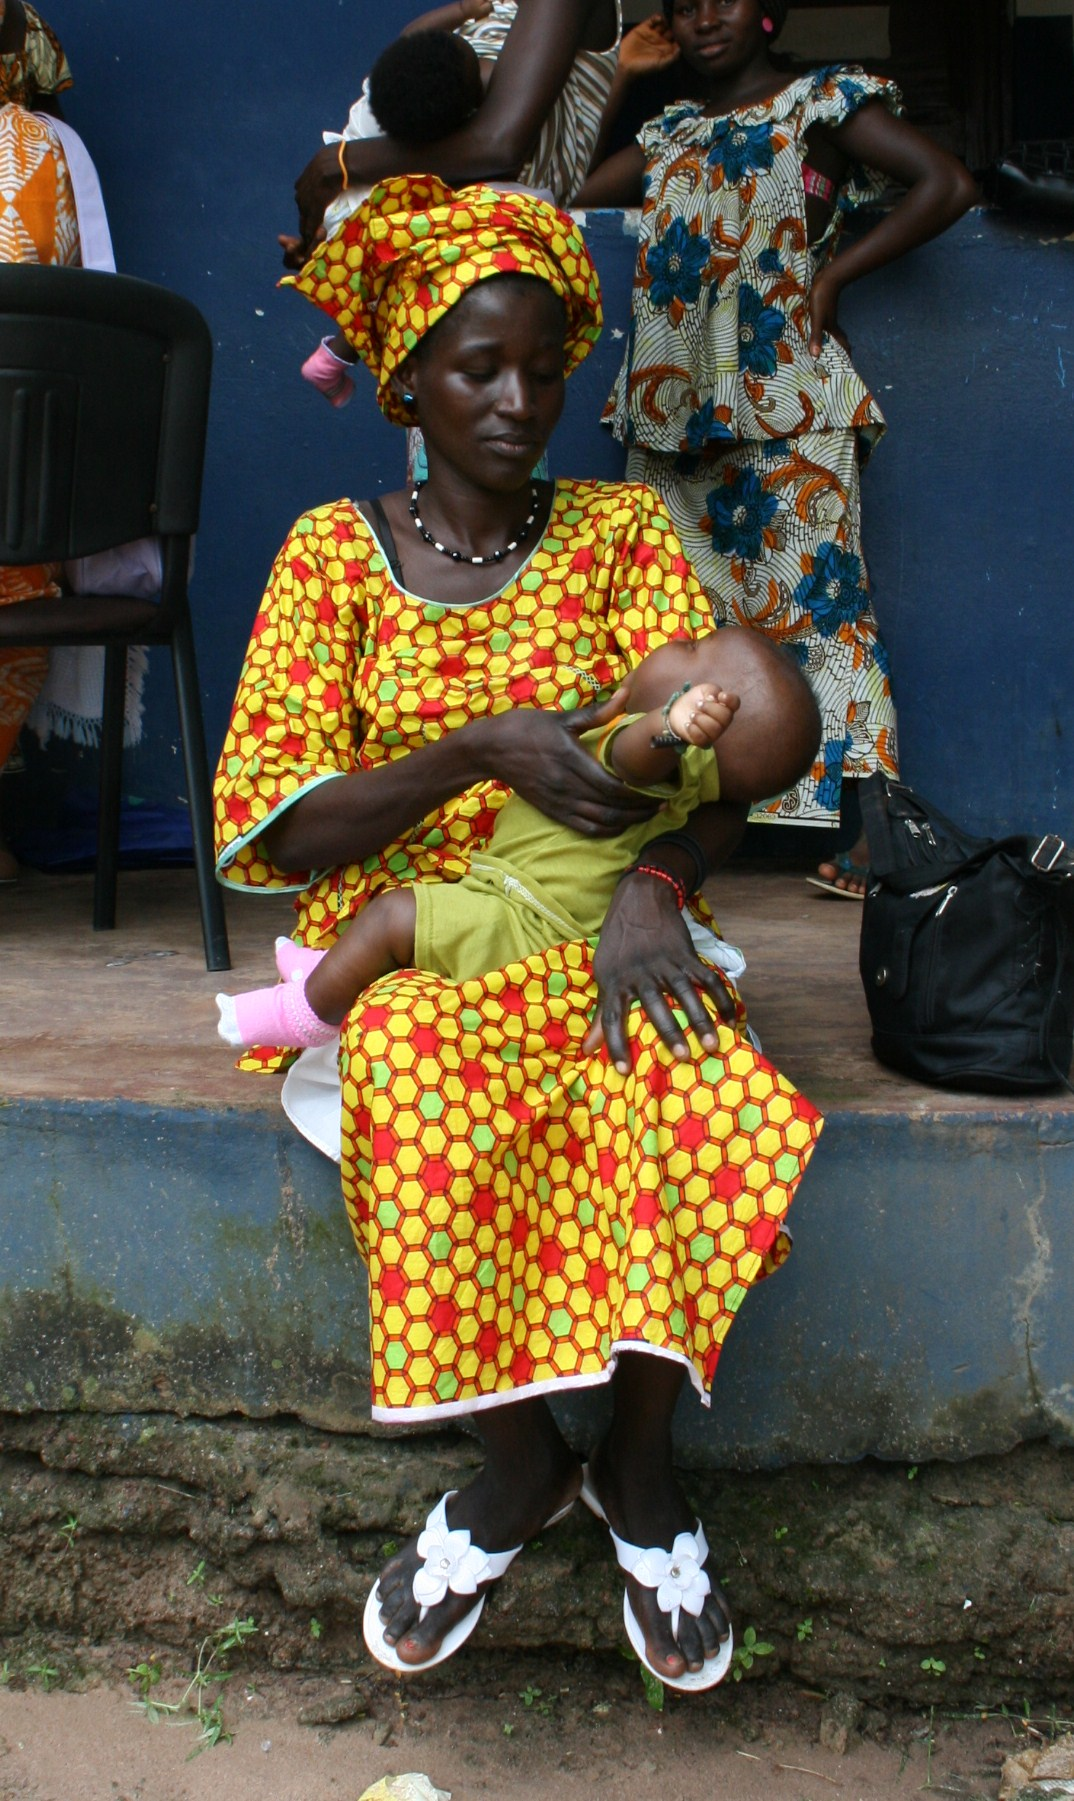 Woman waiting for her baby to be vaccinated at San Domingos hospital 90km from Bissau